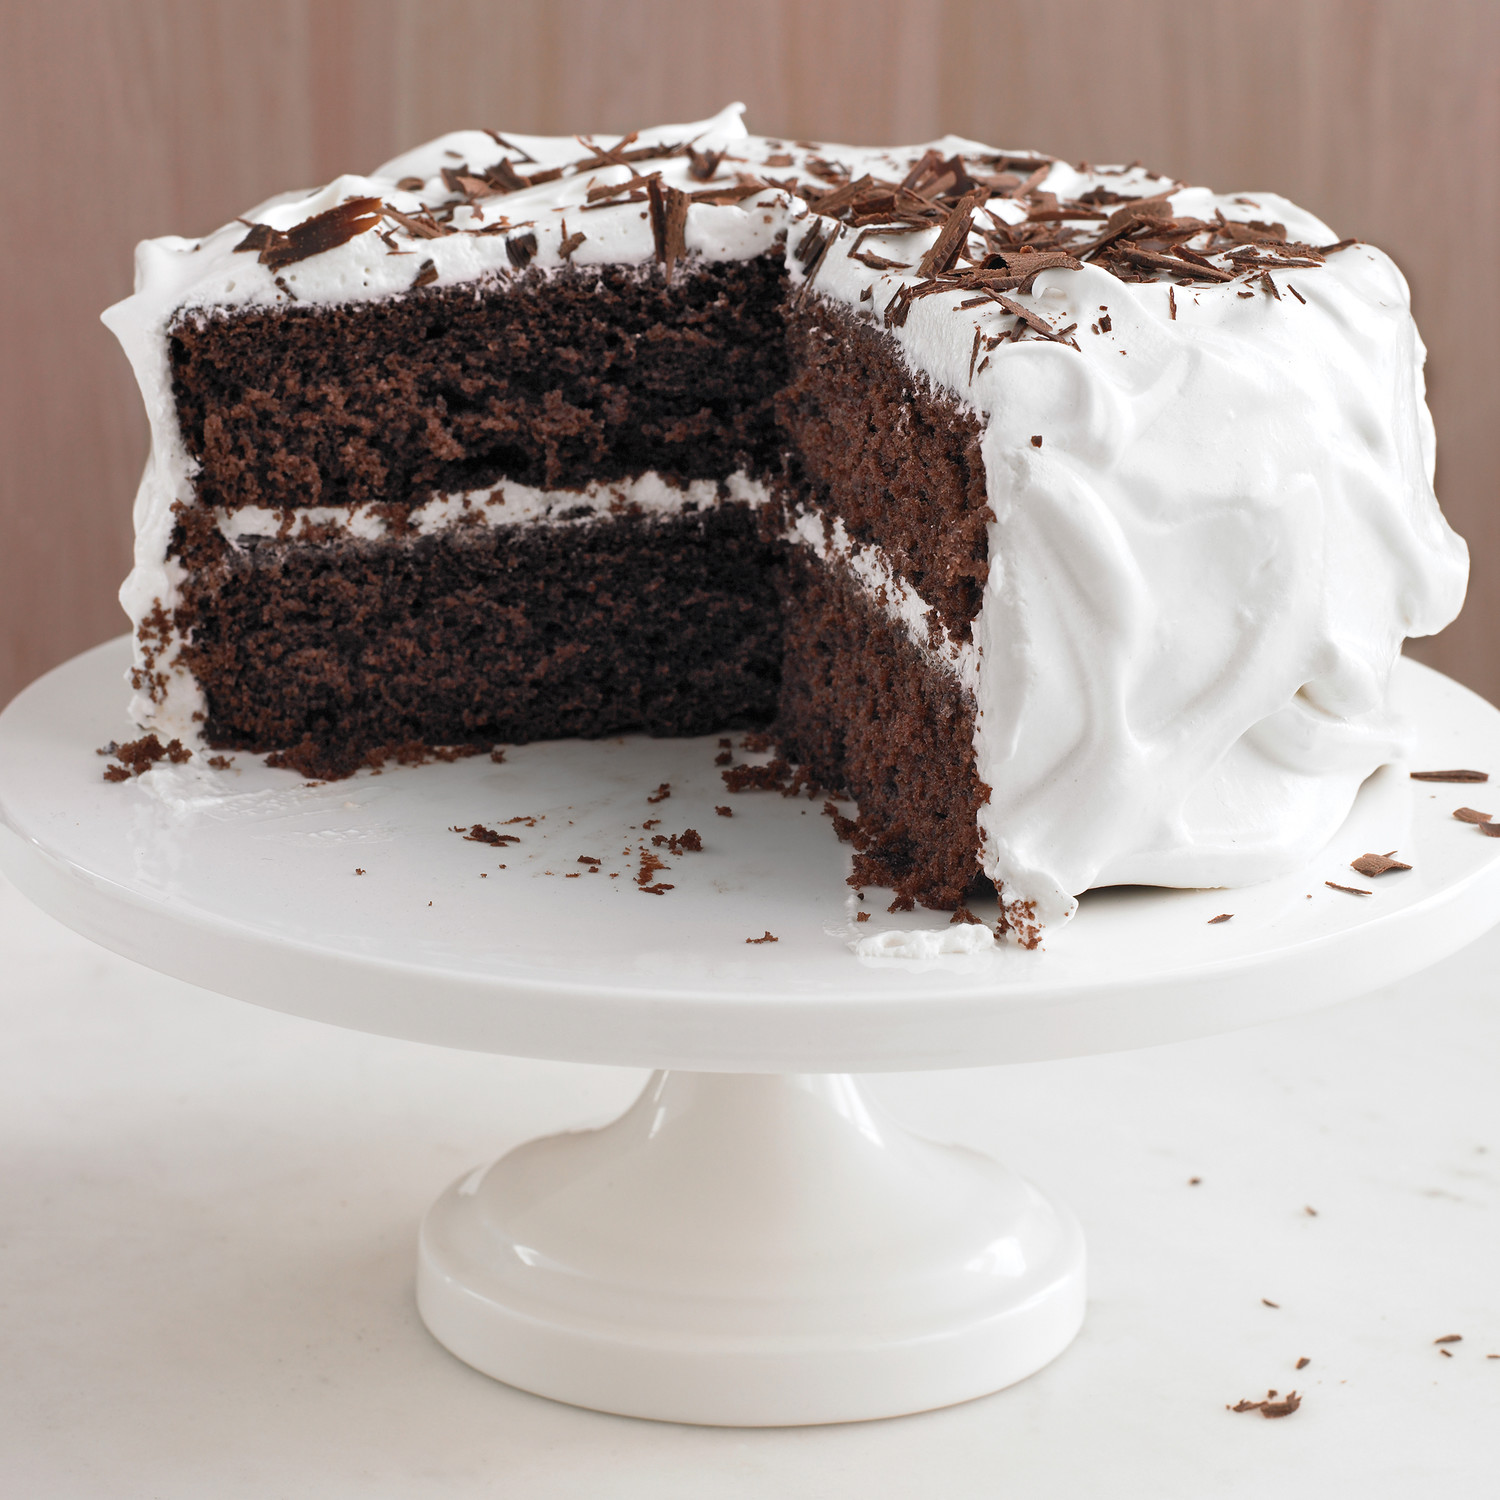 moist chocolate cake recipe for wedding cakes chocolate cake 17497